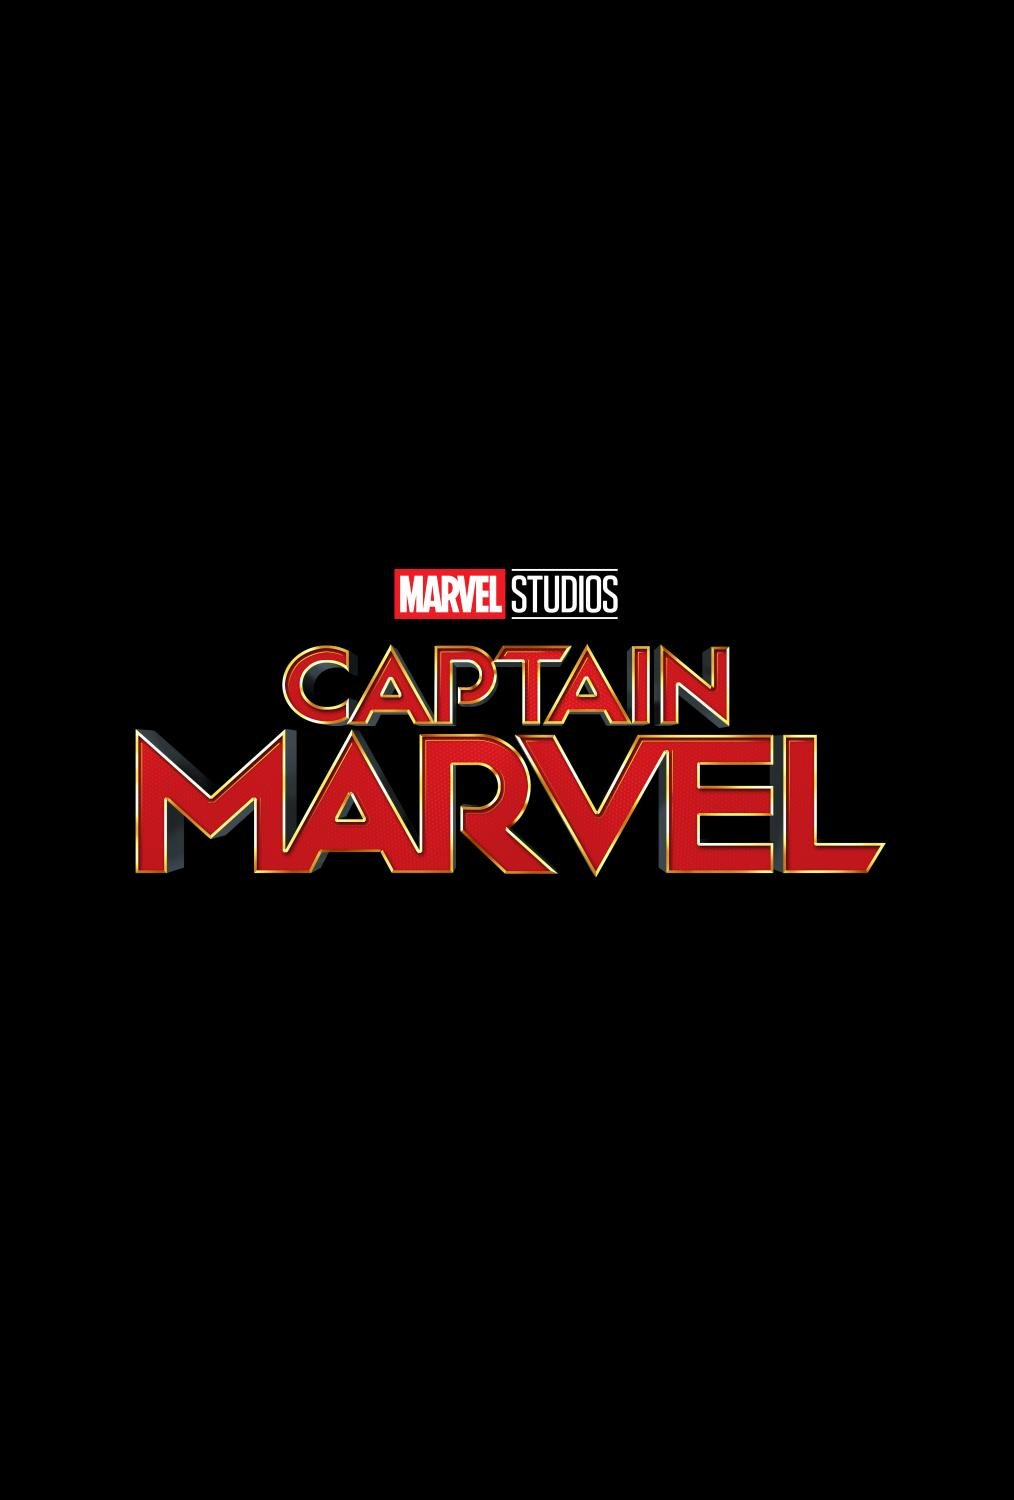 Captain Marvel is in production!